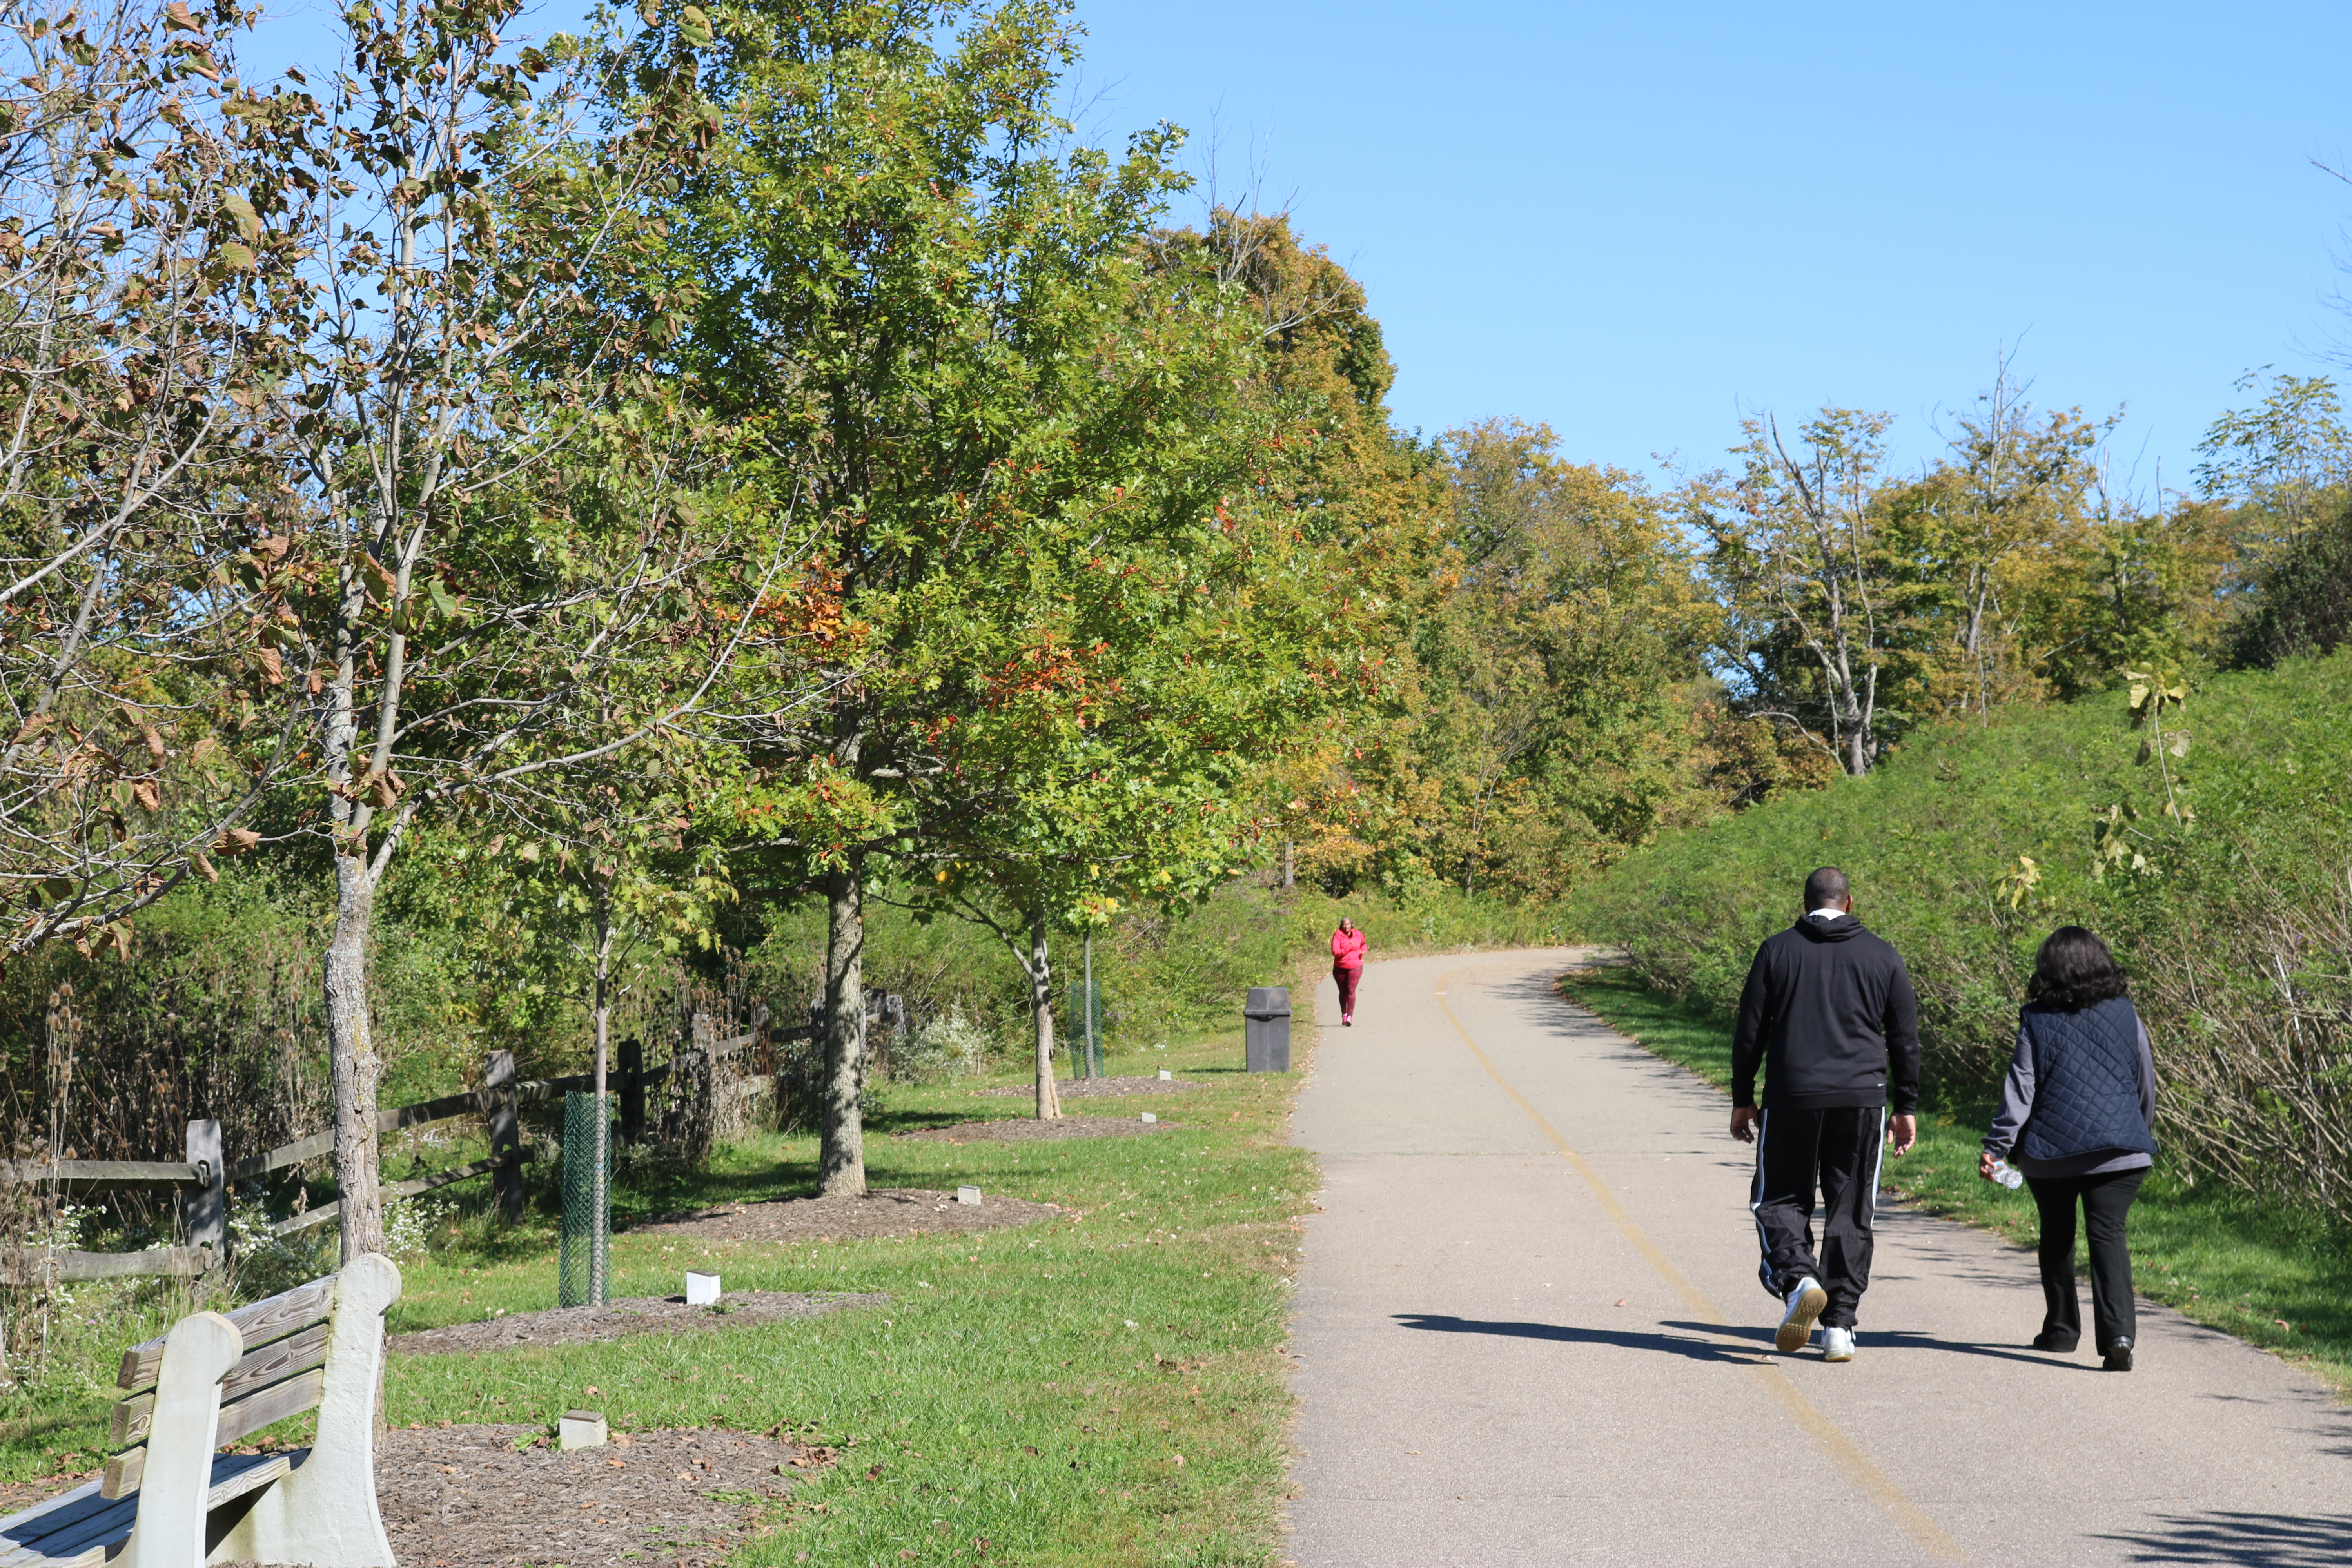 A couple walks along a paved, multi-use trail in Winton Woods.